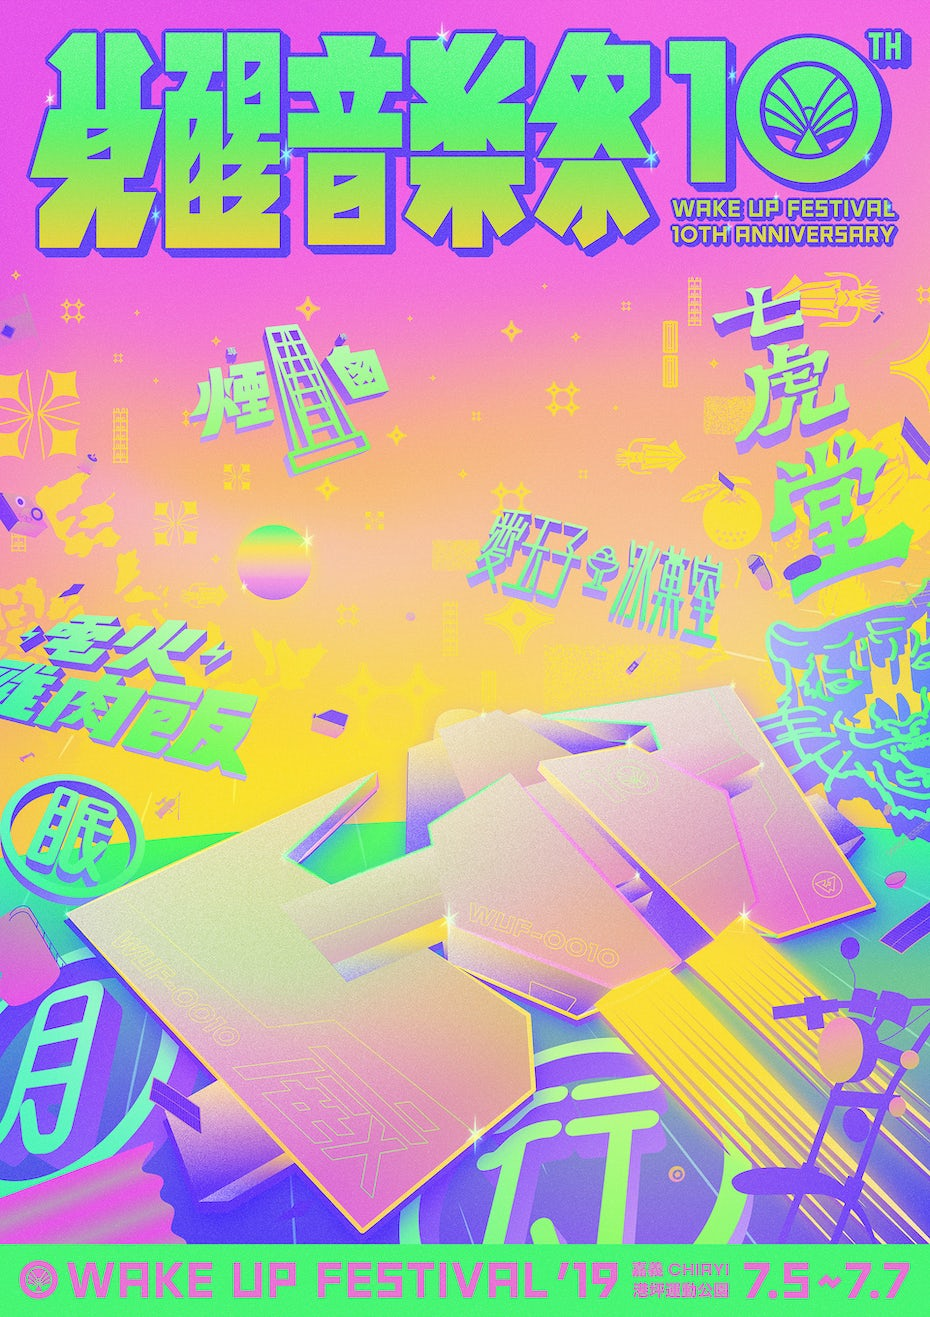 Graphic design trends 2020: Neon colored Taiwanese poster design